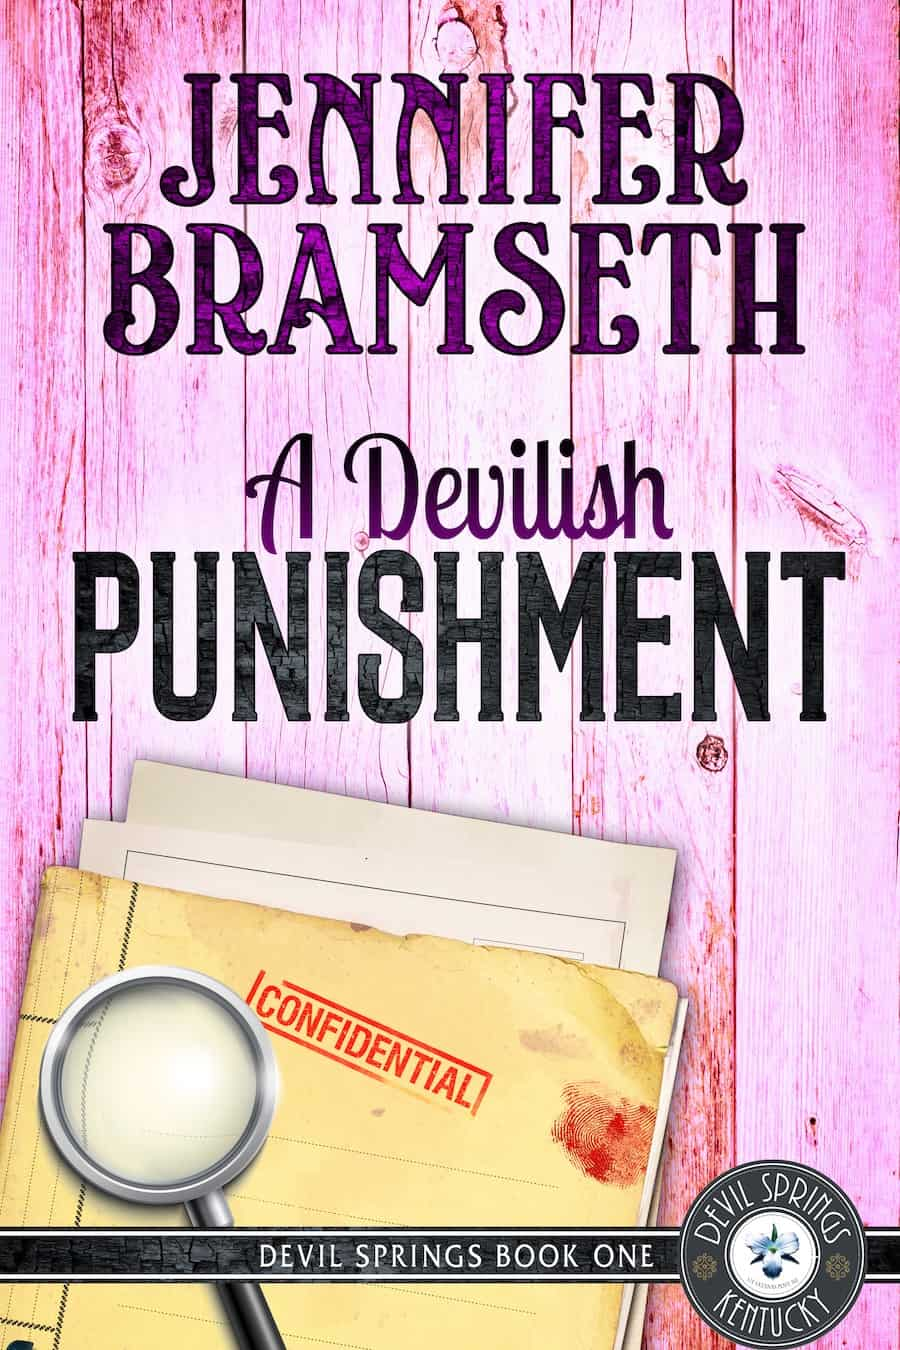 """Check out this exciting cozy mystery, DEVILISH PUNISHMENT by Jennifer Bramseth. """"Prosecuting a pervert. A dead mentor. A new boss. What else could go wrong?"""""""